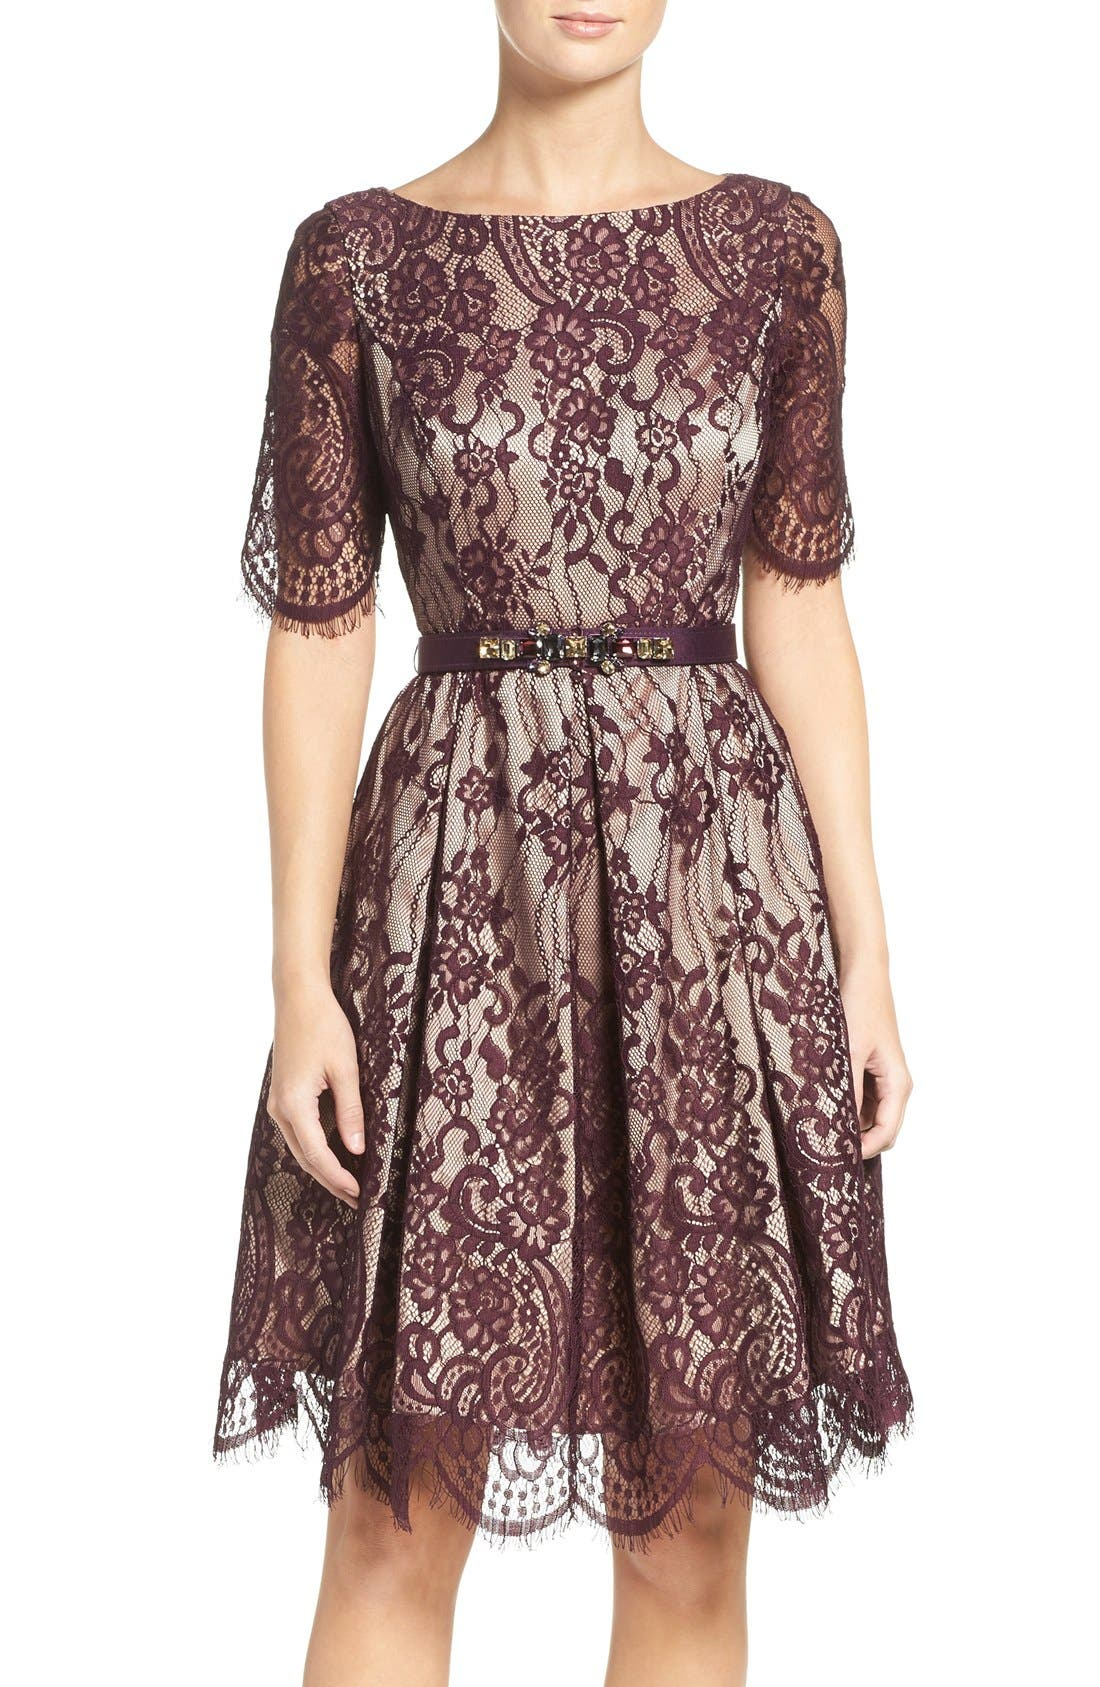 Alternate Image 1 Selected - Eliza J Lace Fit & Flare Dress